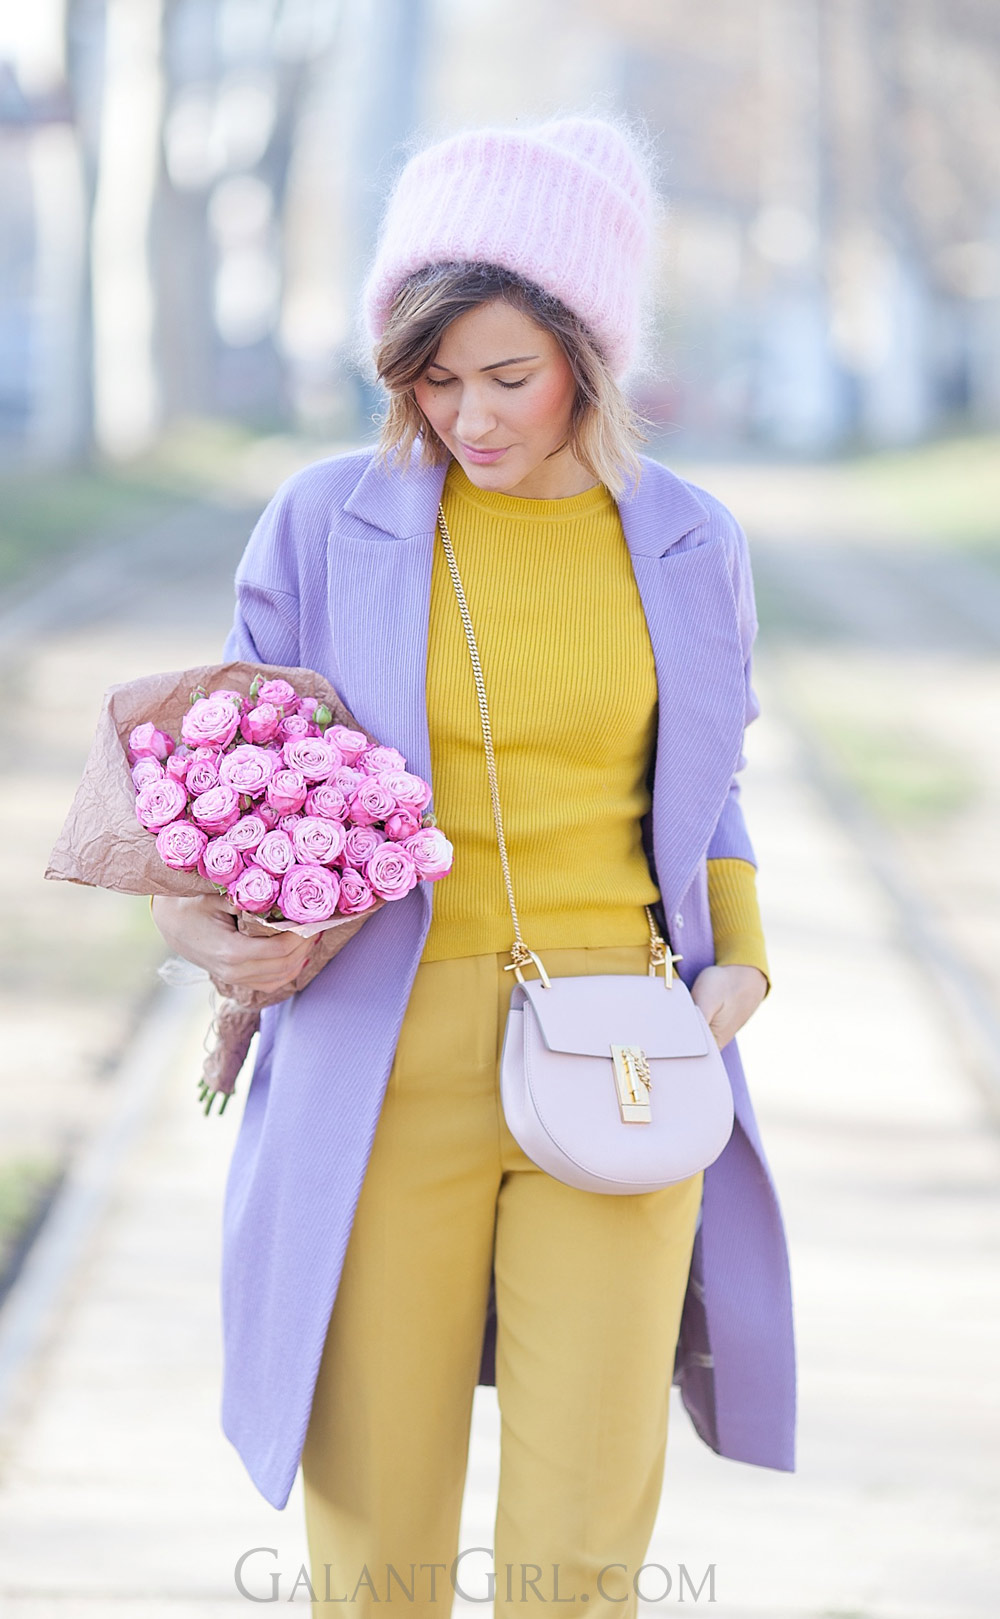 bouquet+of+roses+chloe+drew+bag+outfit